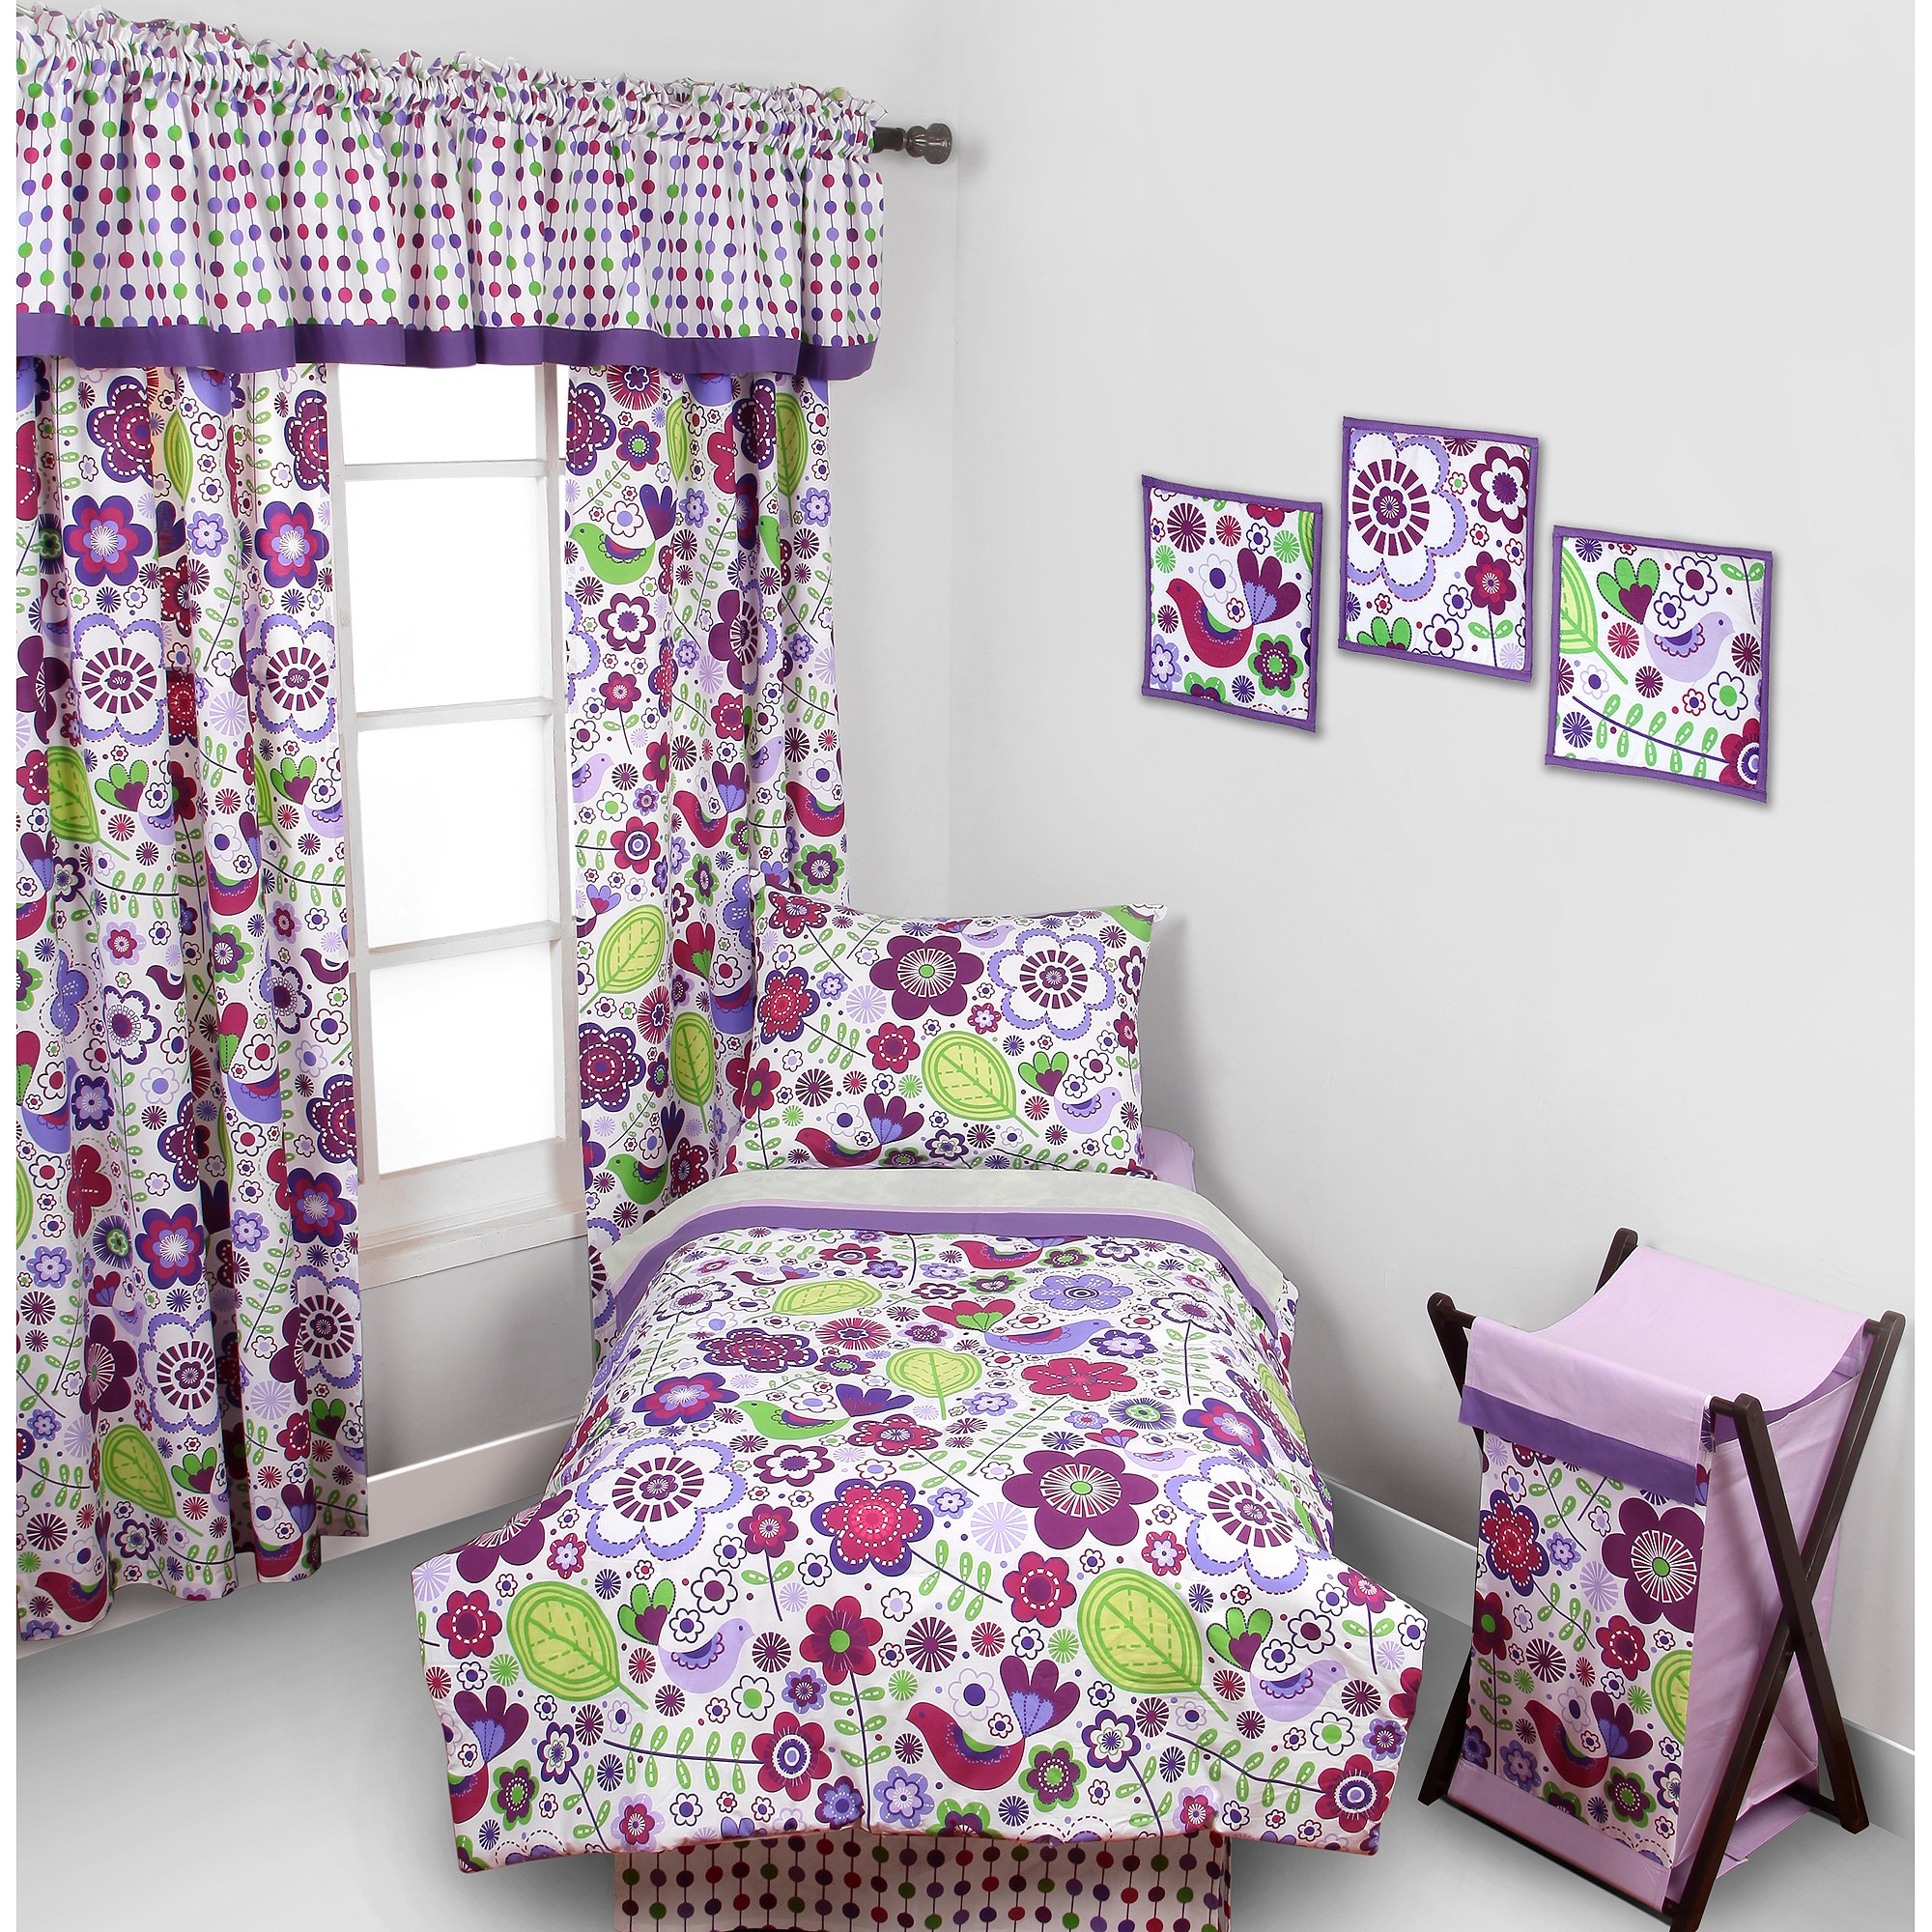 cover red purple a floral pink in bag set itm bed bedding animal duvet print